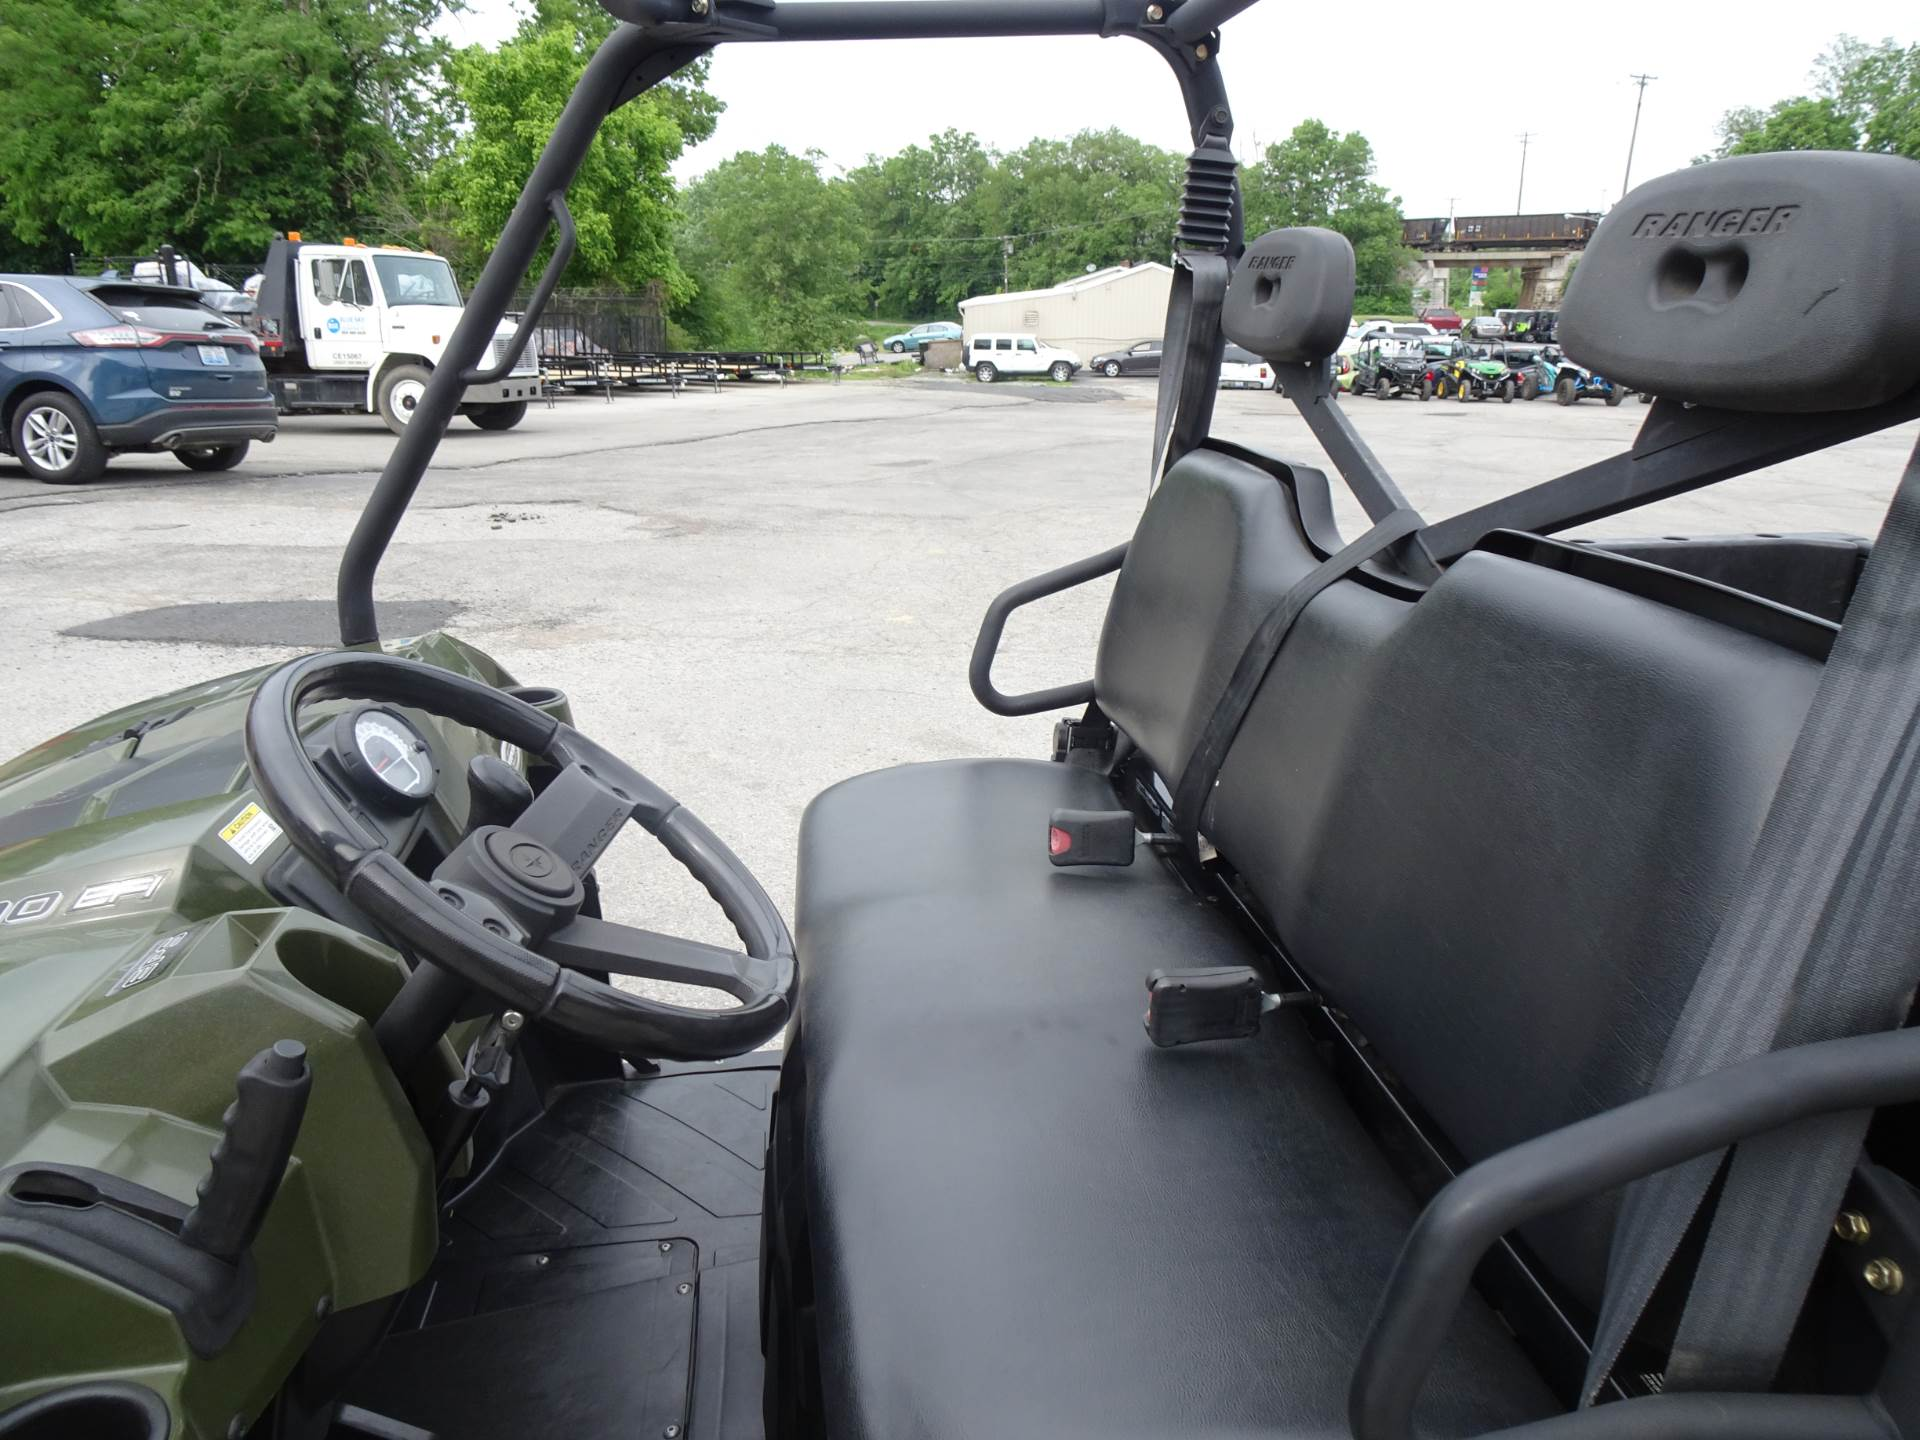 2012 Polaris Ranger® HD 800 in Georgetown, Kentucky - Photo 9